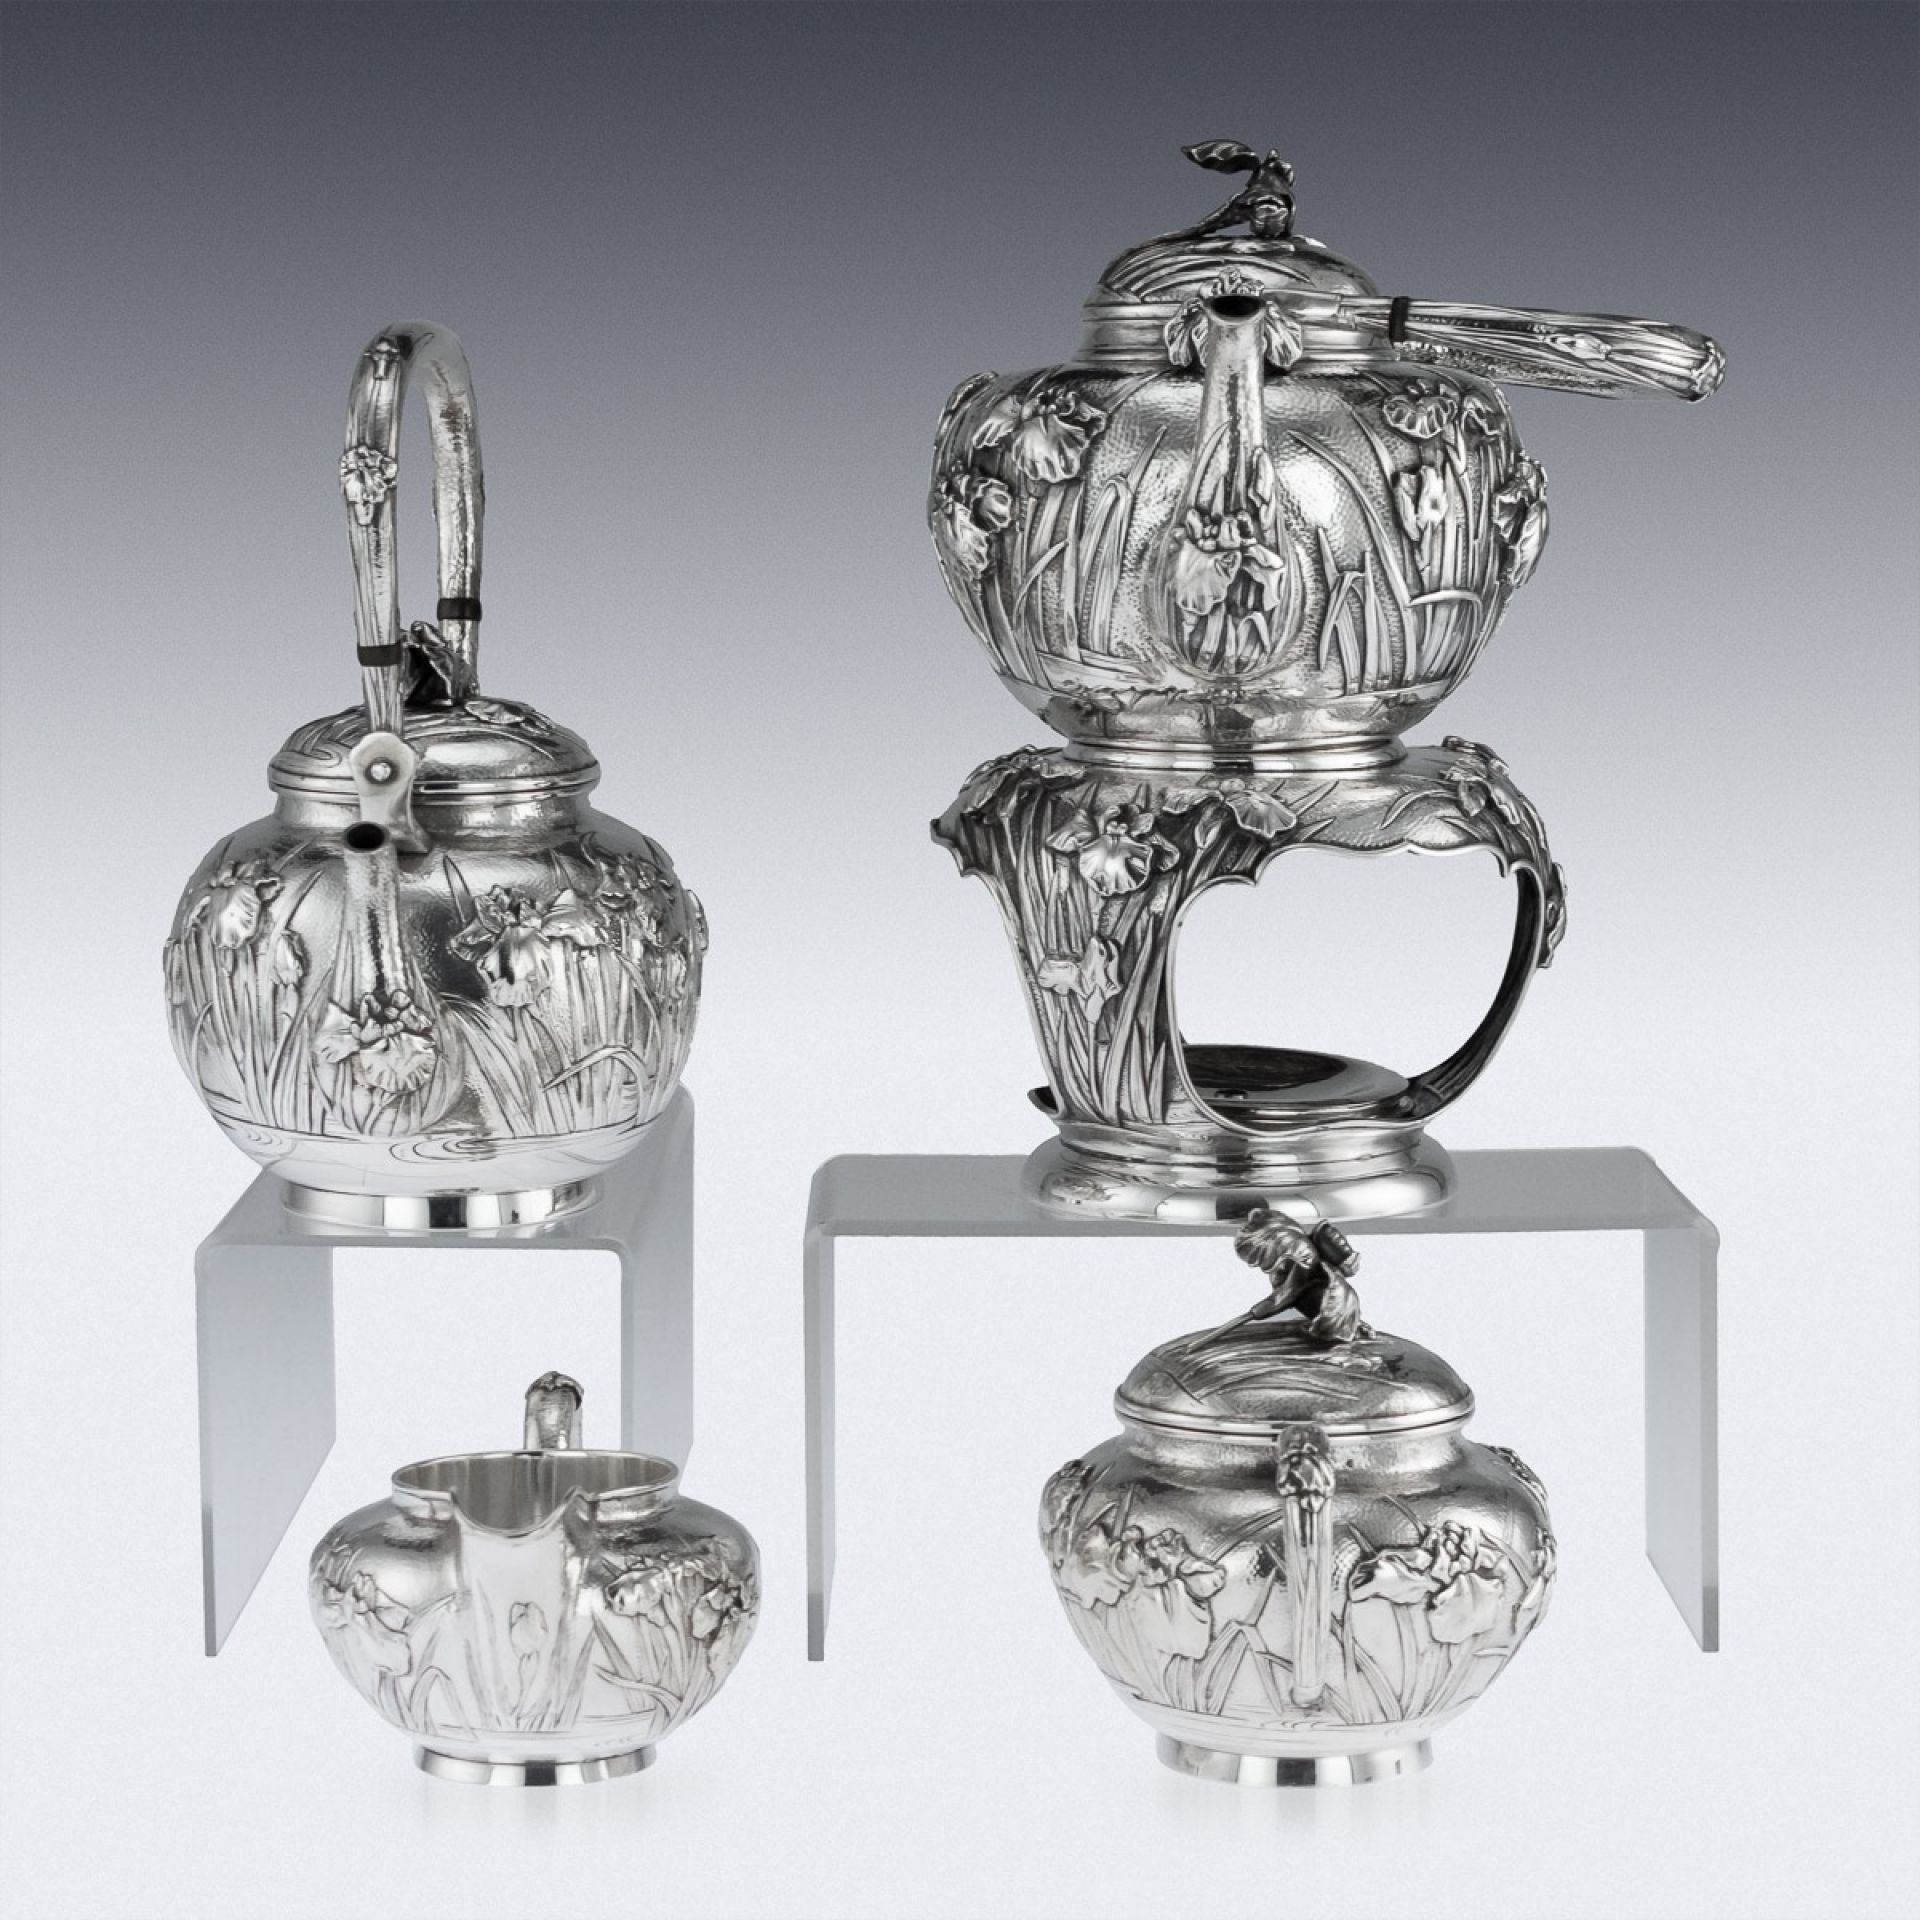 ANTIQUE 20thC JAPANESE SOLID SILVER TEA & COFFEE SERVICE ON TRAY c.1900